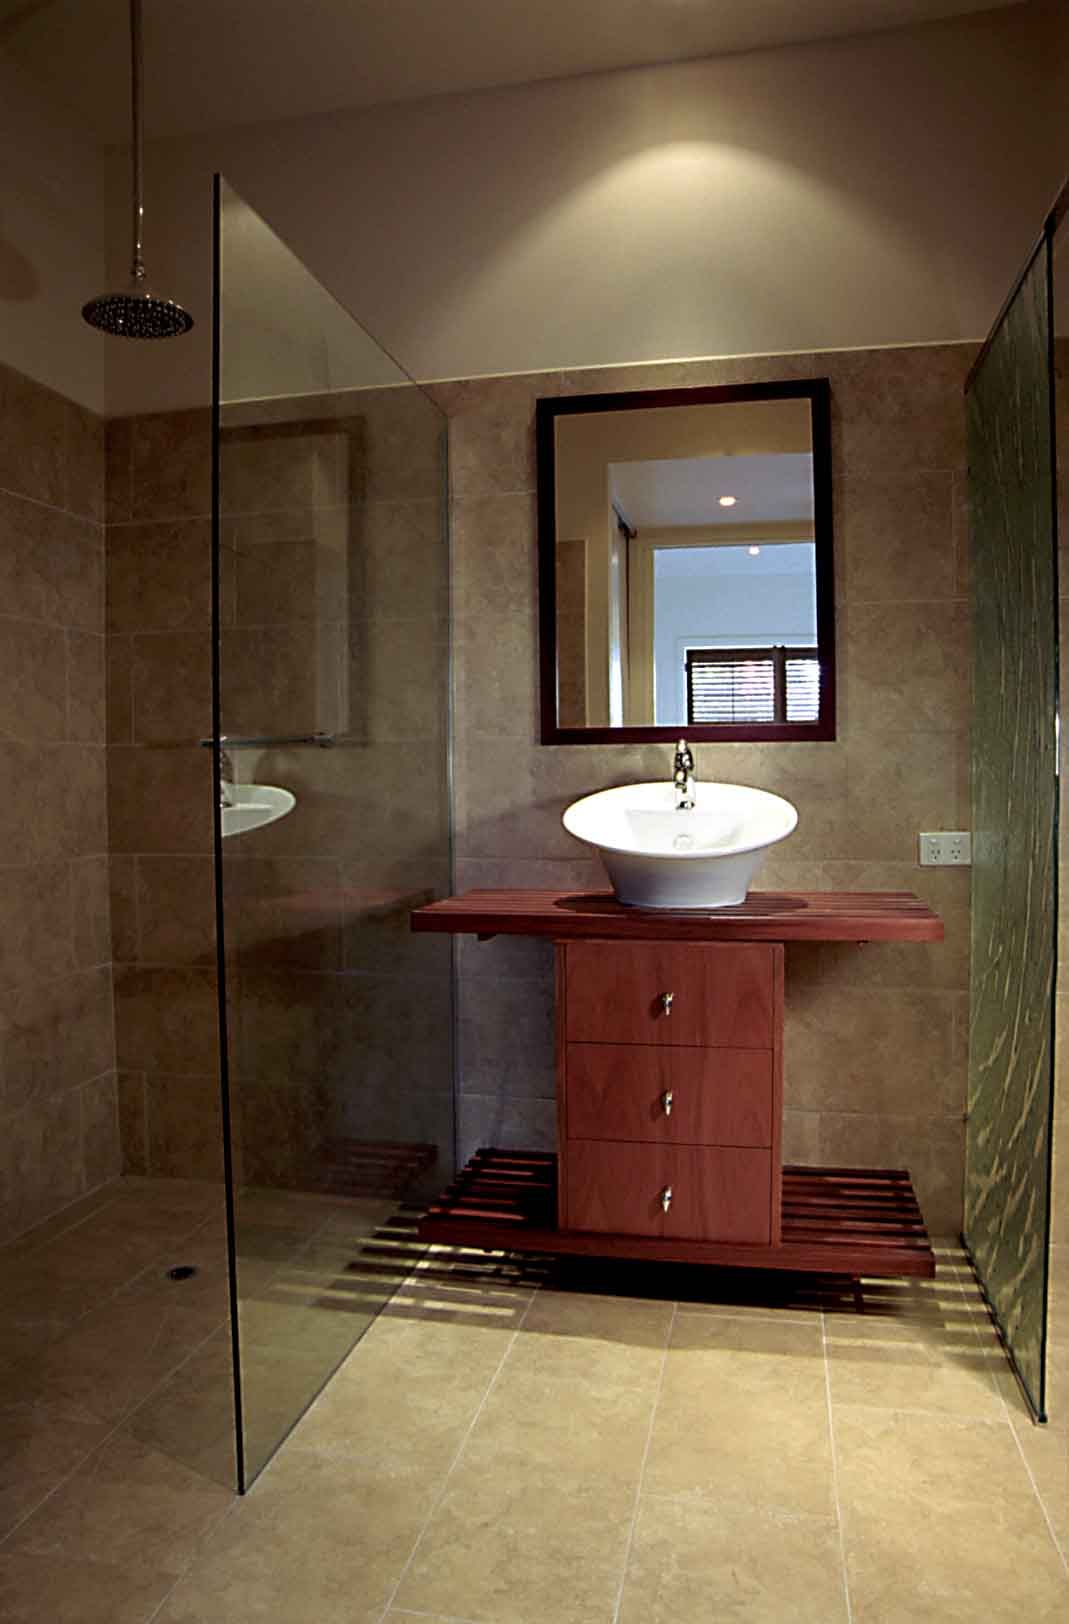 Wet room design for small bathrooms small ensuite for Small restroom design ideas